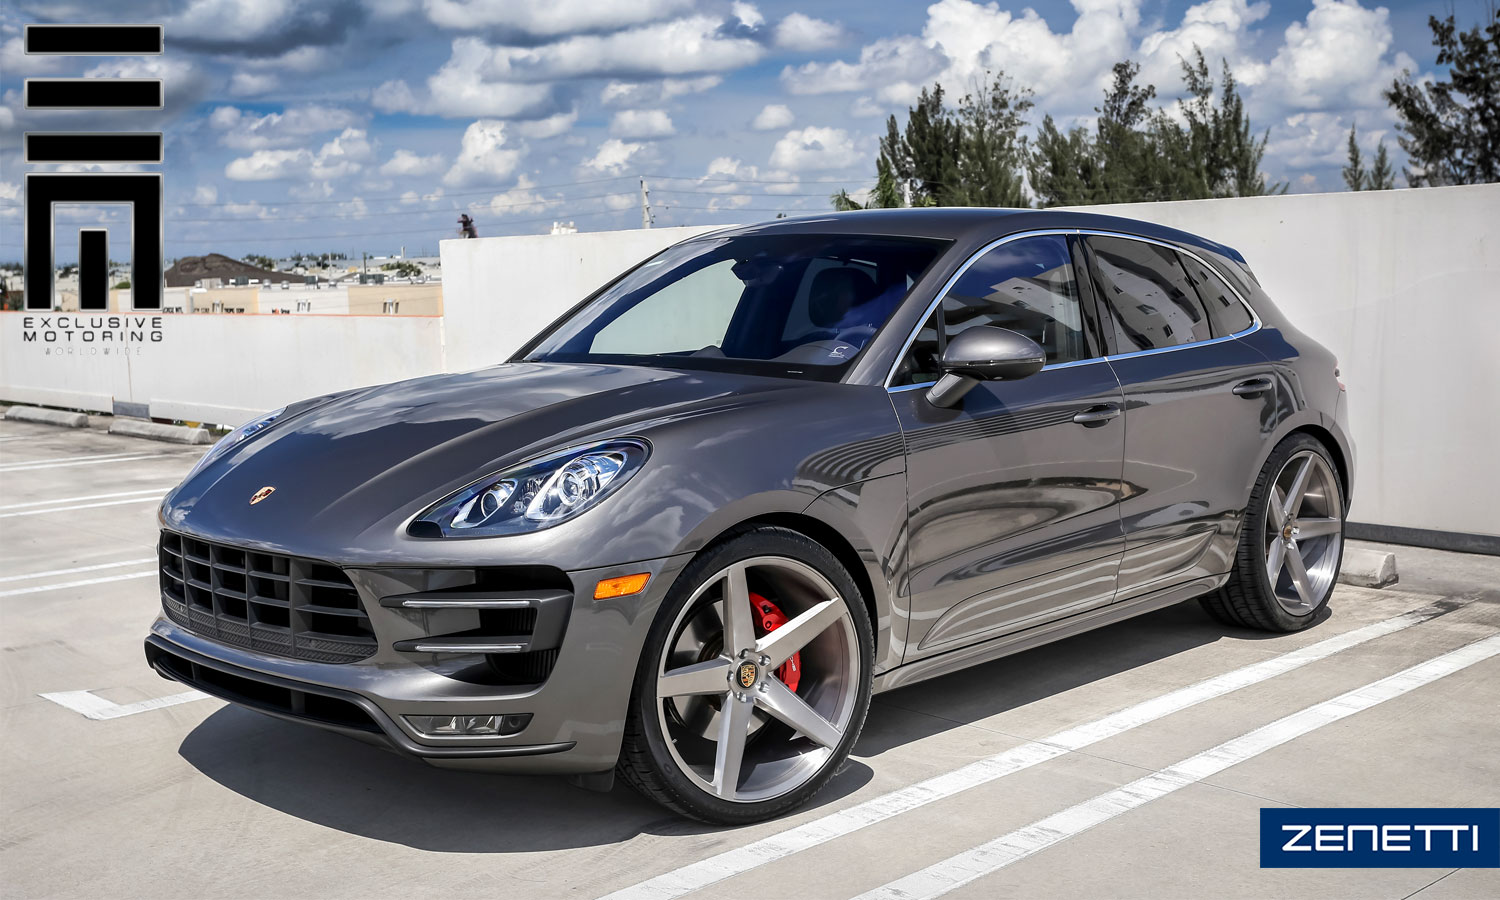 Zenetti Wheels | 2016 Porsche Macan S with Brushed Silver Zenetti Baron 22x10.5